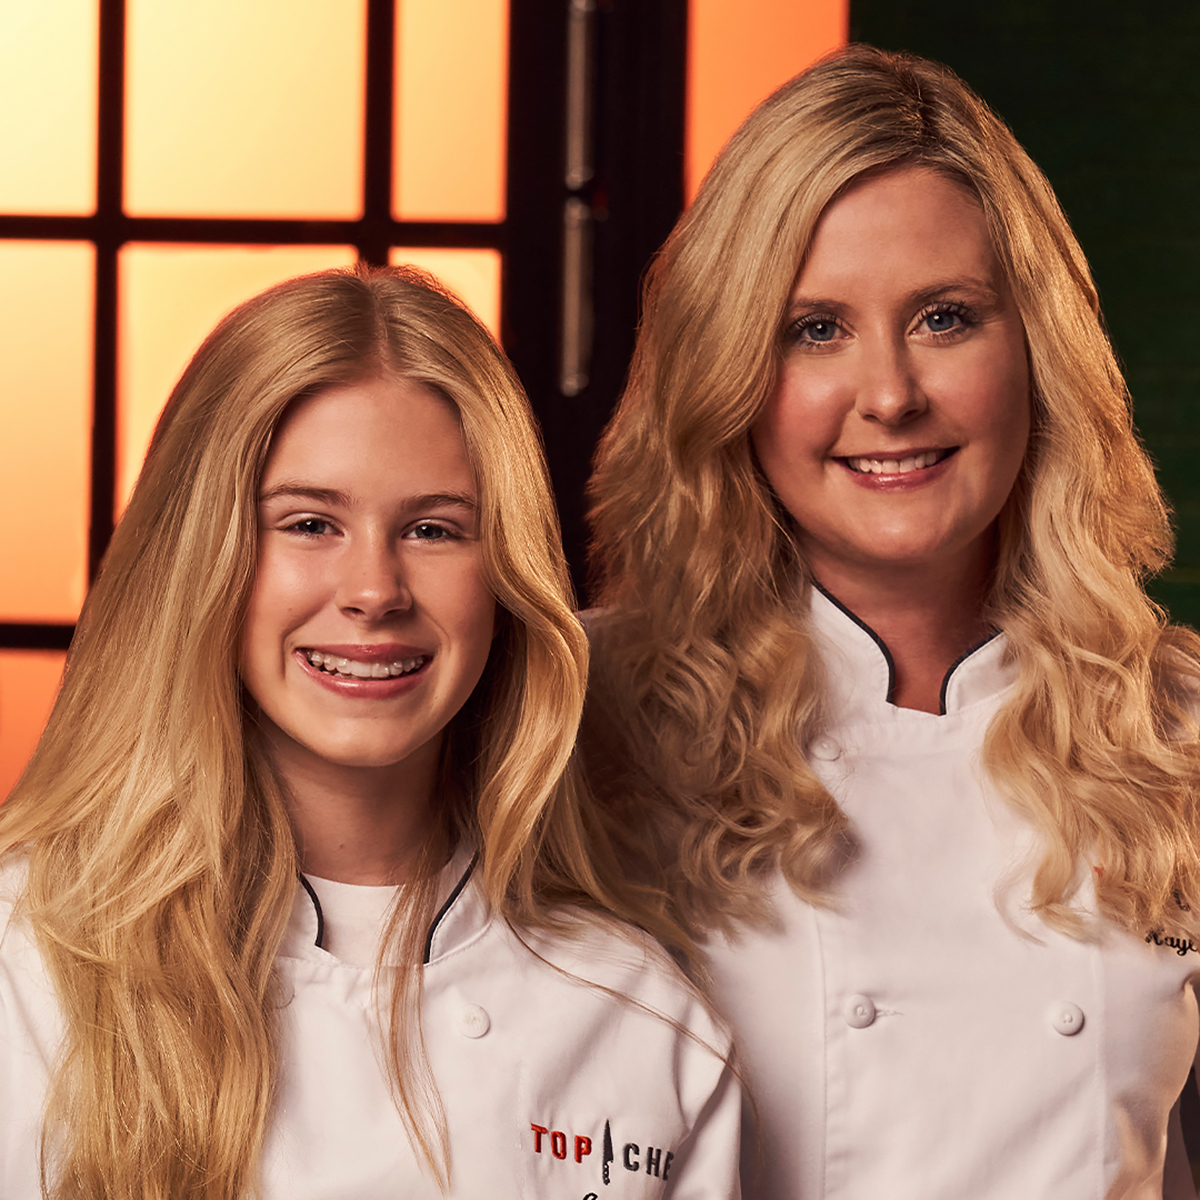 Top Chef Family Style contestants Ainsley and Hayley Crouse